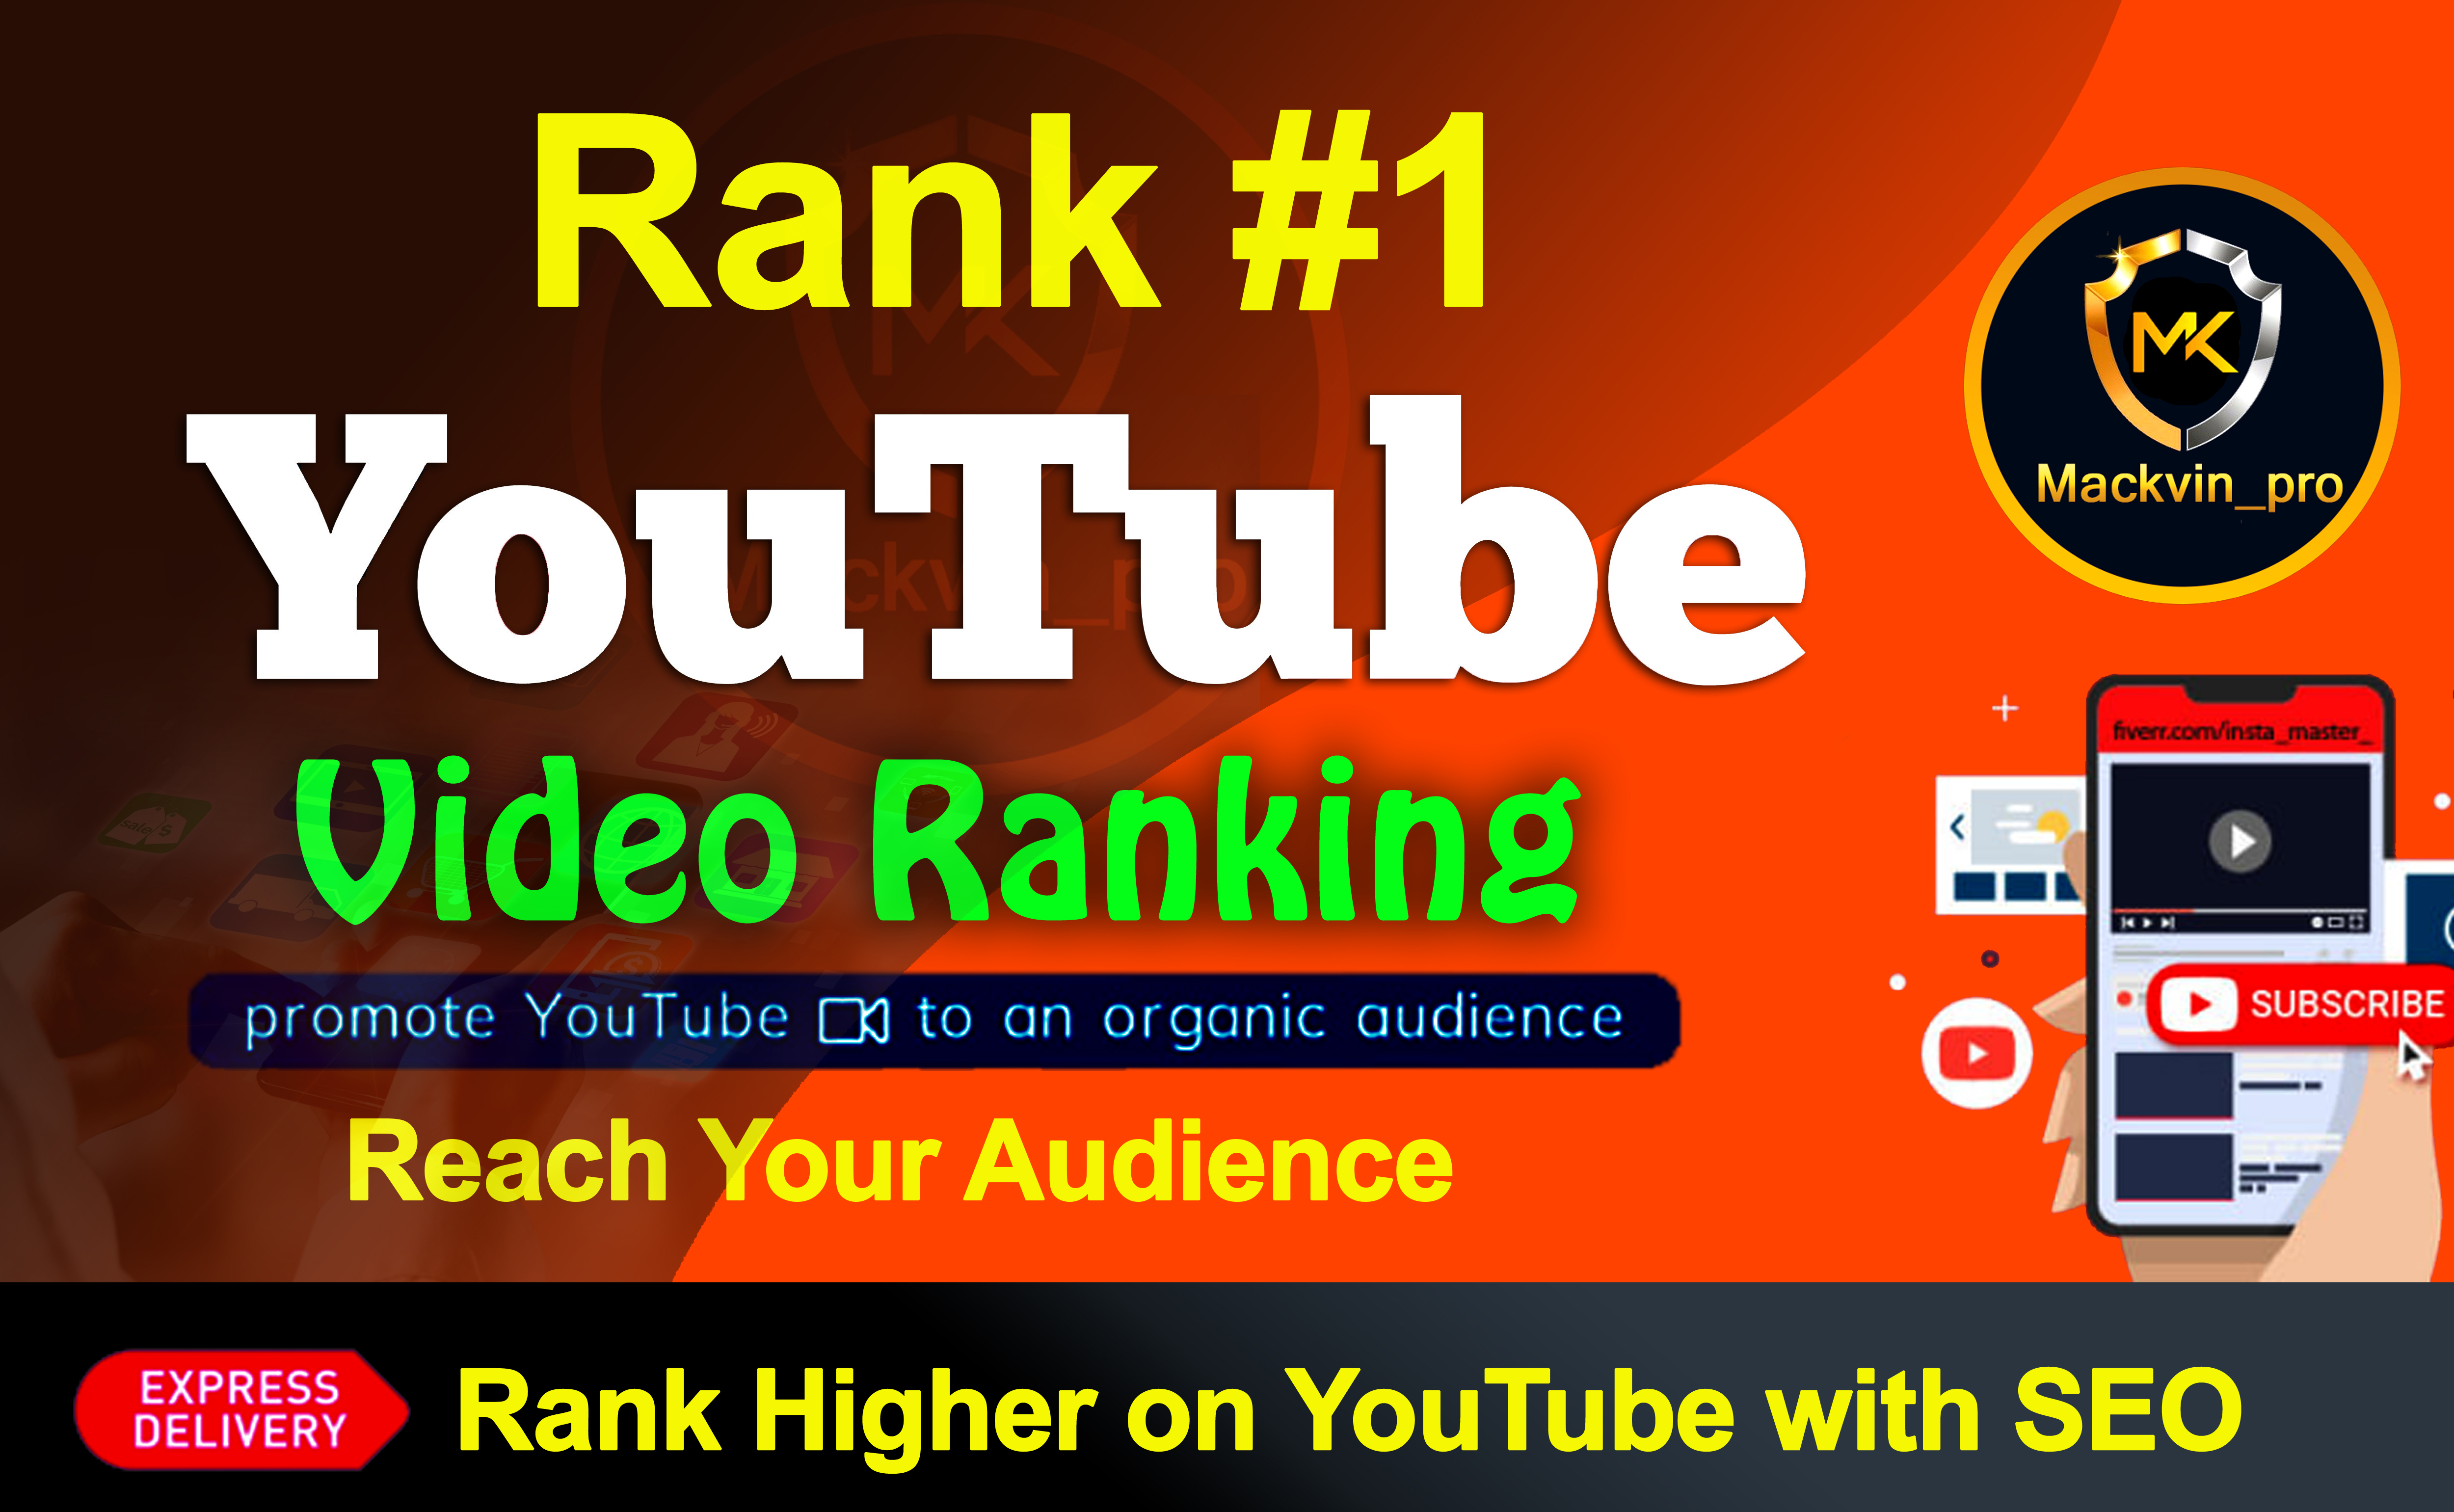 YouTube Video Ranking on First Page with Real Audience and SEO